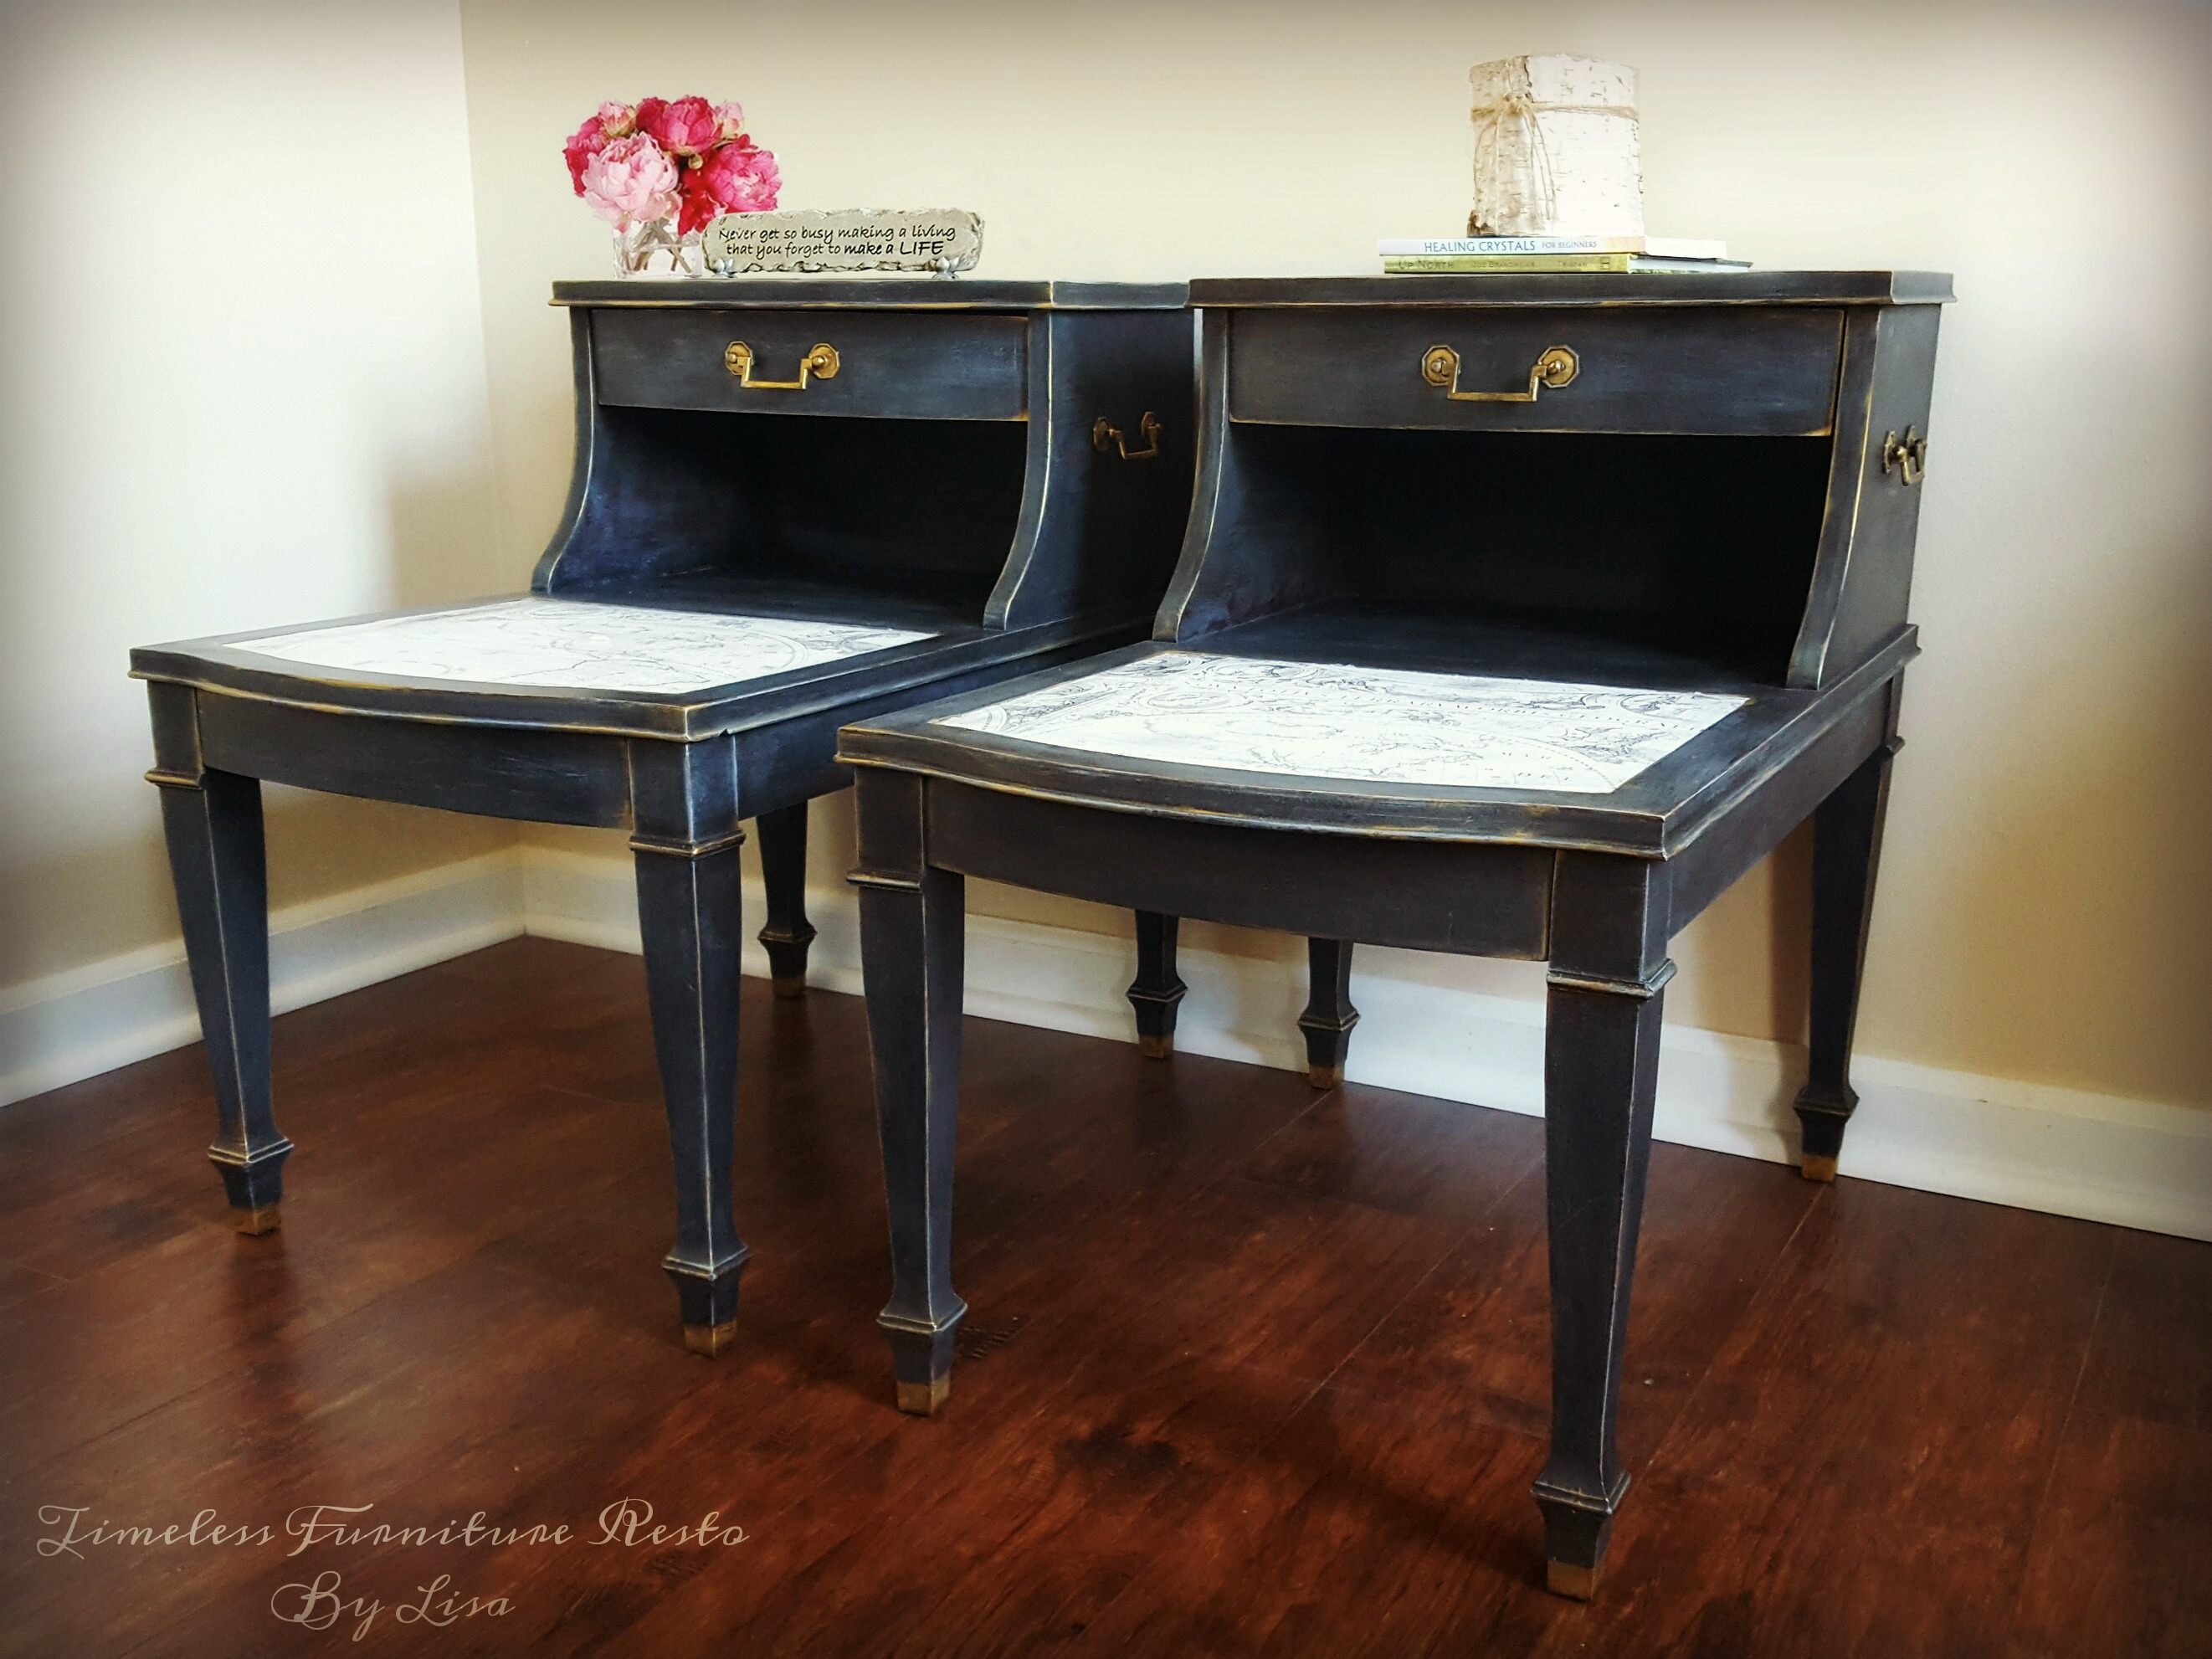 Chic Twin Tables - Makeover by Timeless Furniture Resto by Lisa